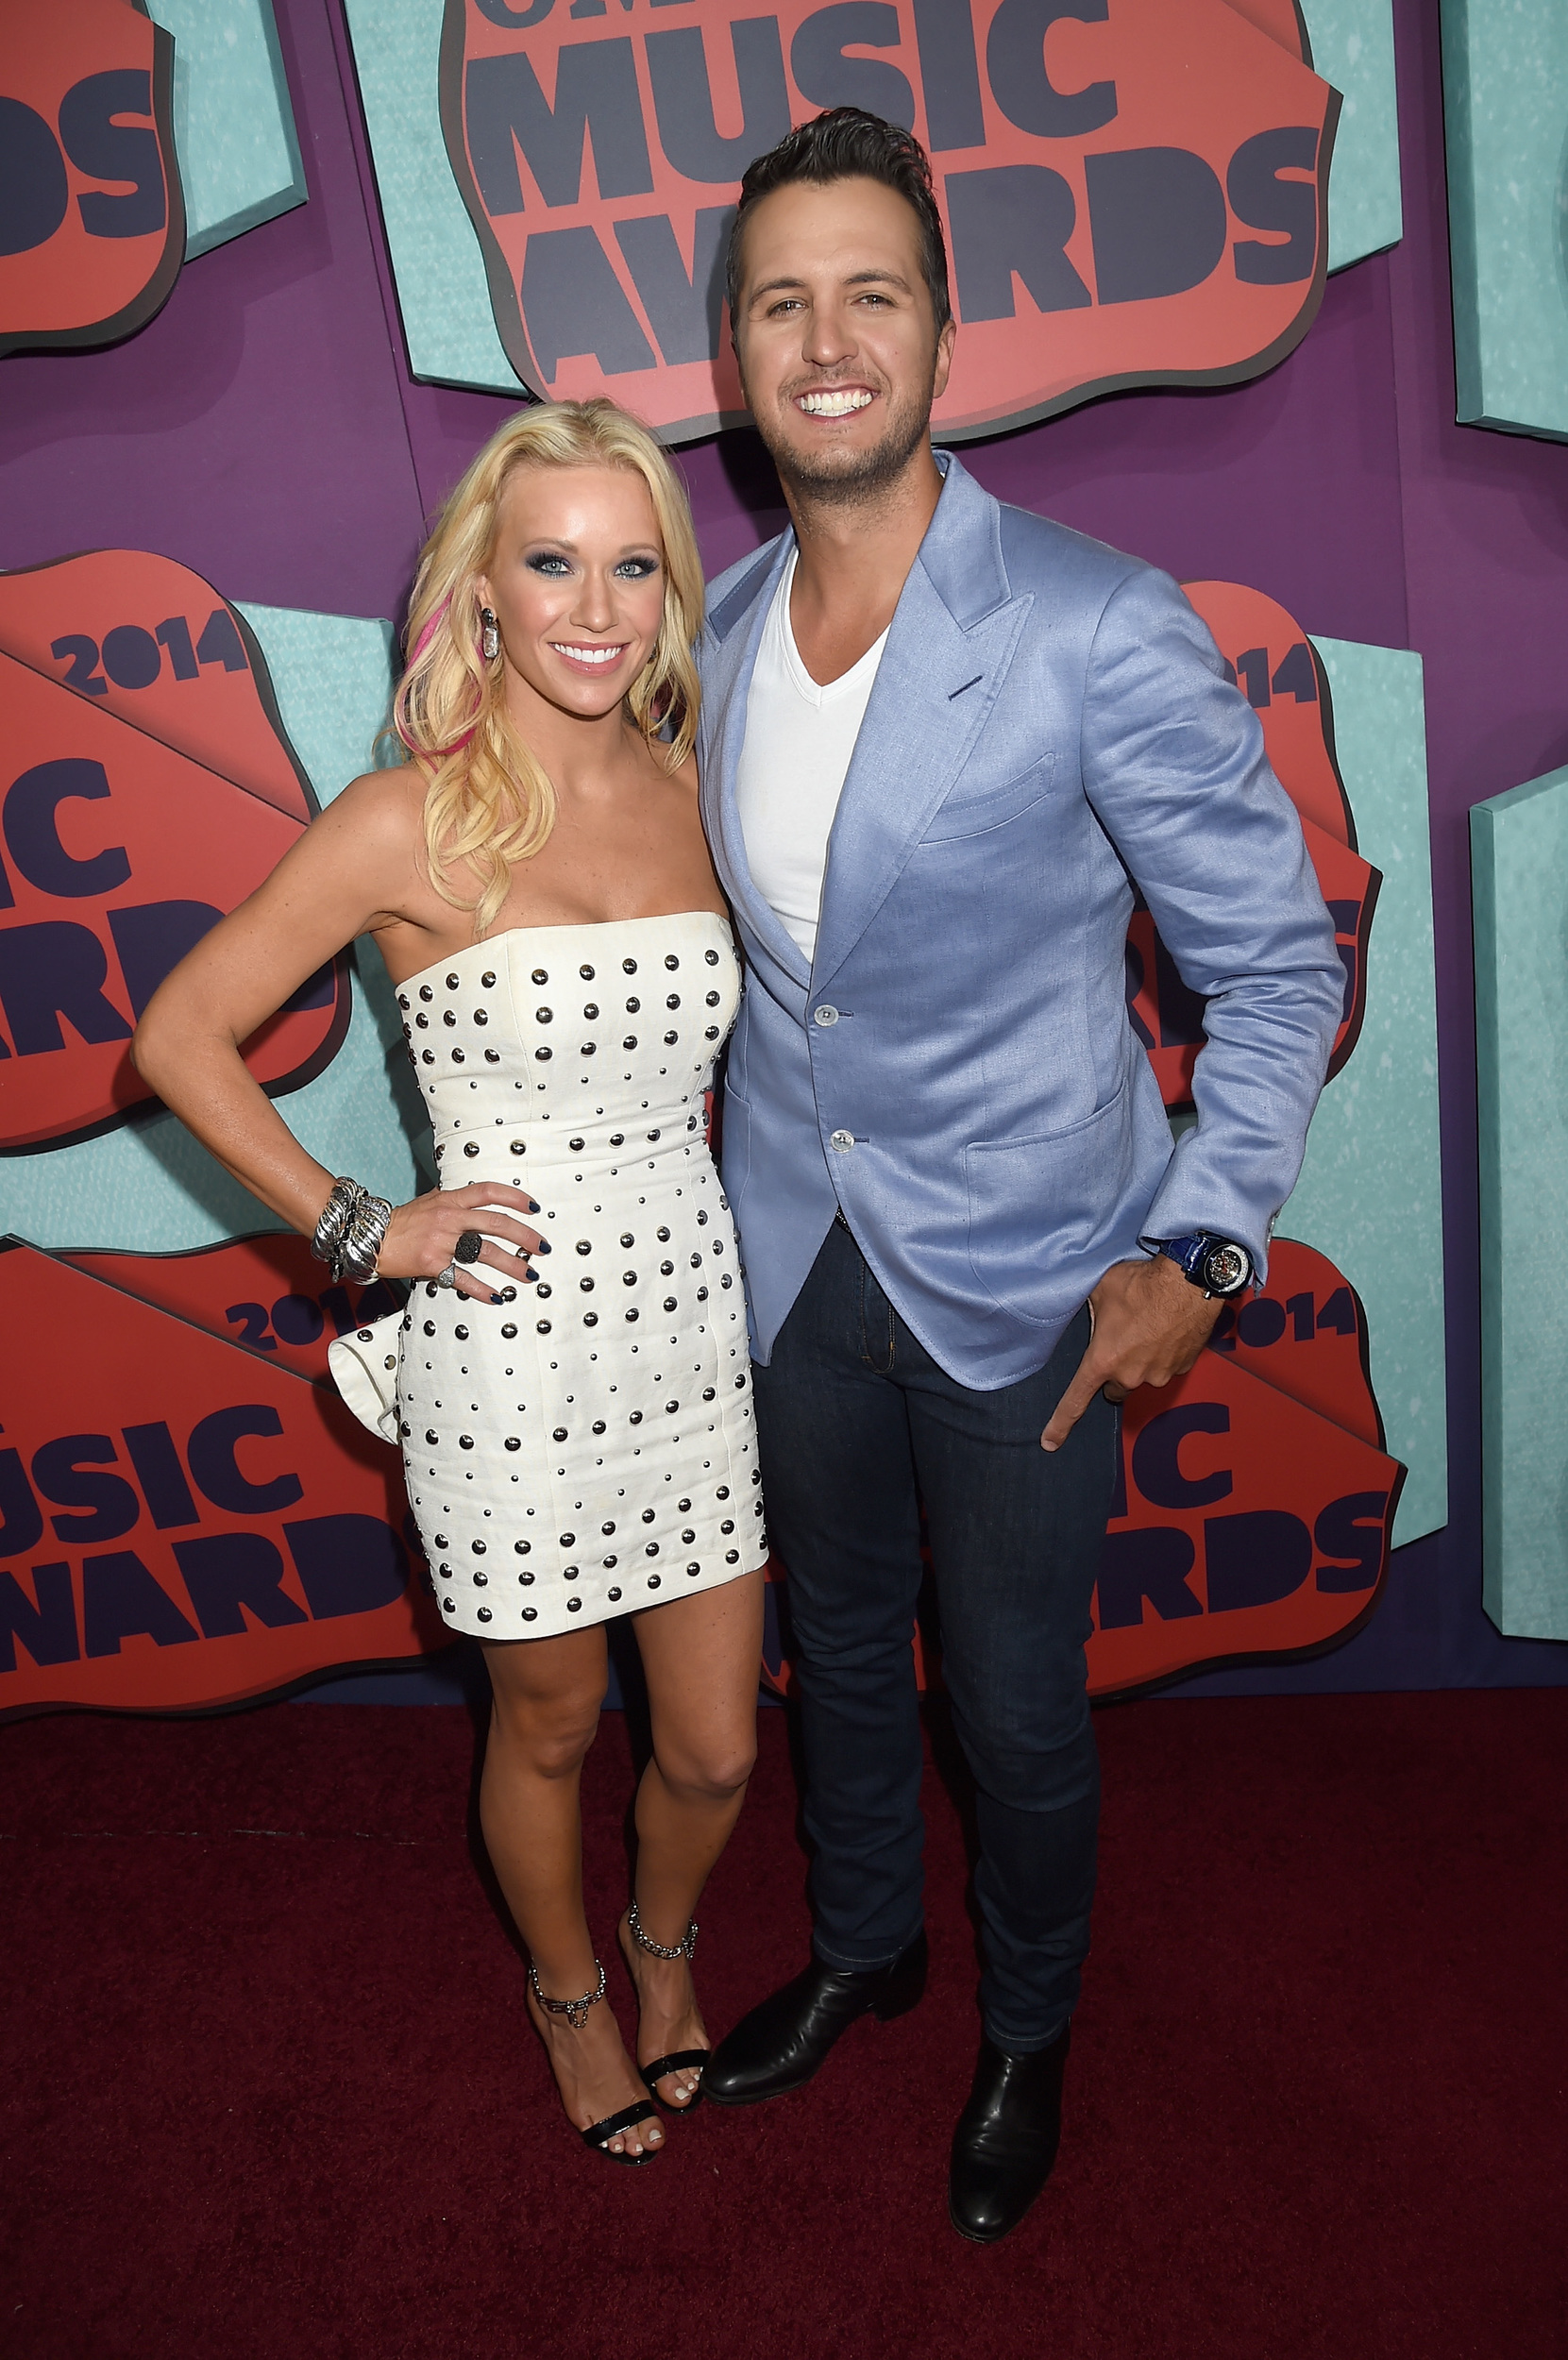 Luke bryan wife and kids 2014 the image for How many kids does luke bryan have